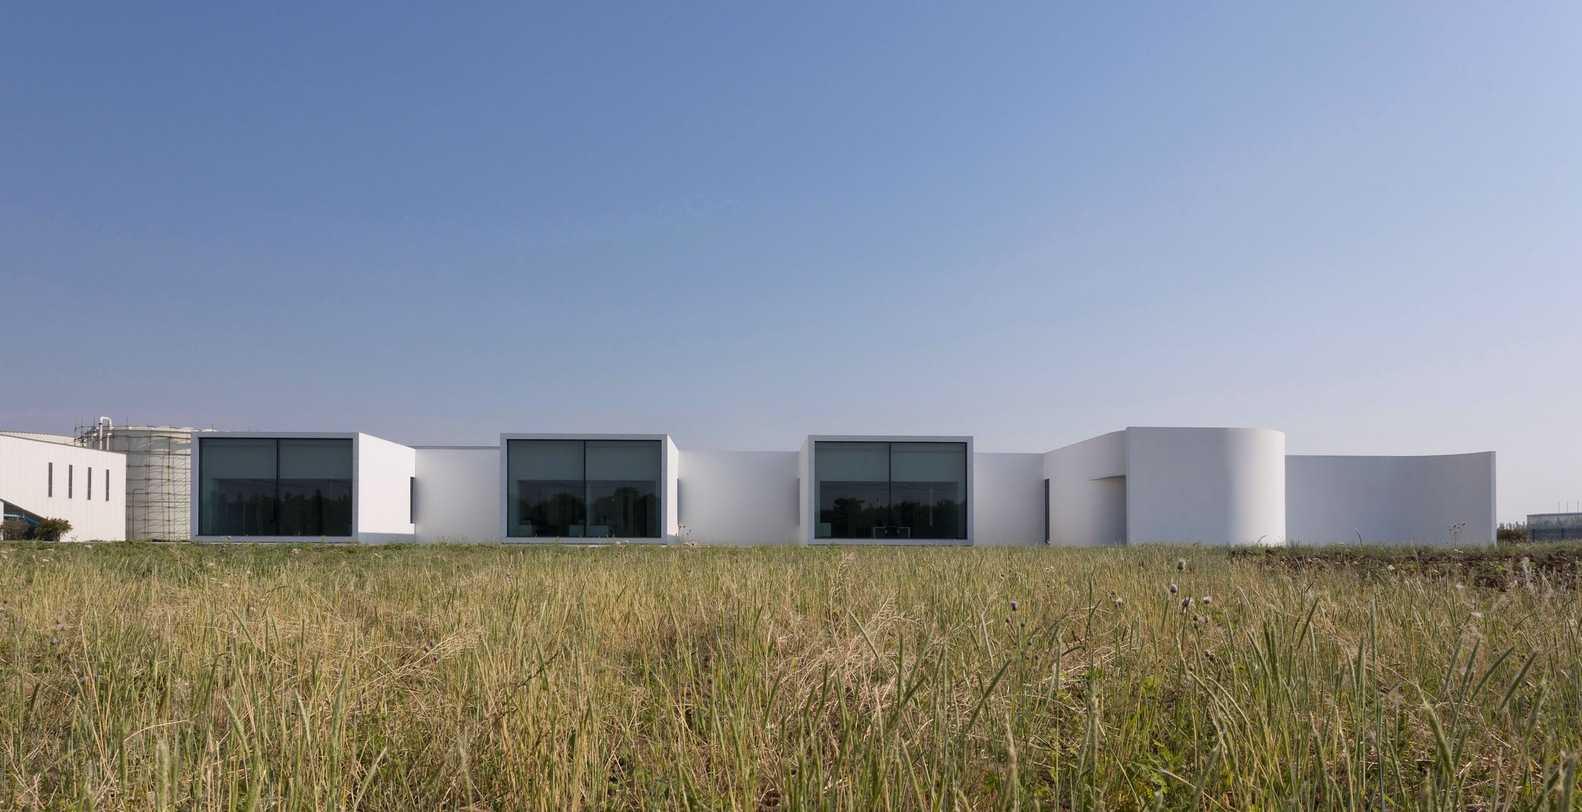 3_Laboratory for Shihlien Biotech Salt Plant_WZWX Architecture Group_Inspirationist